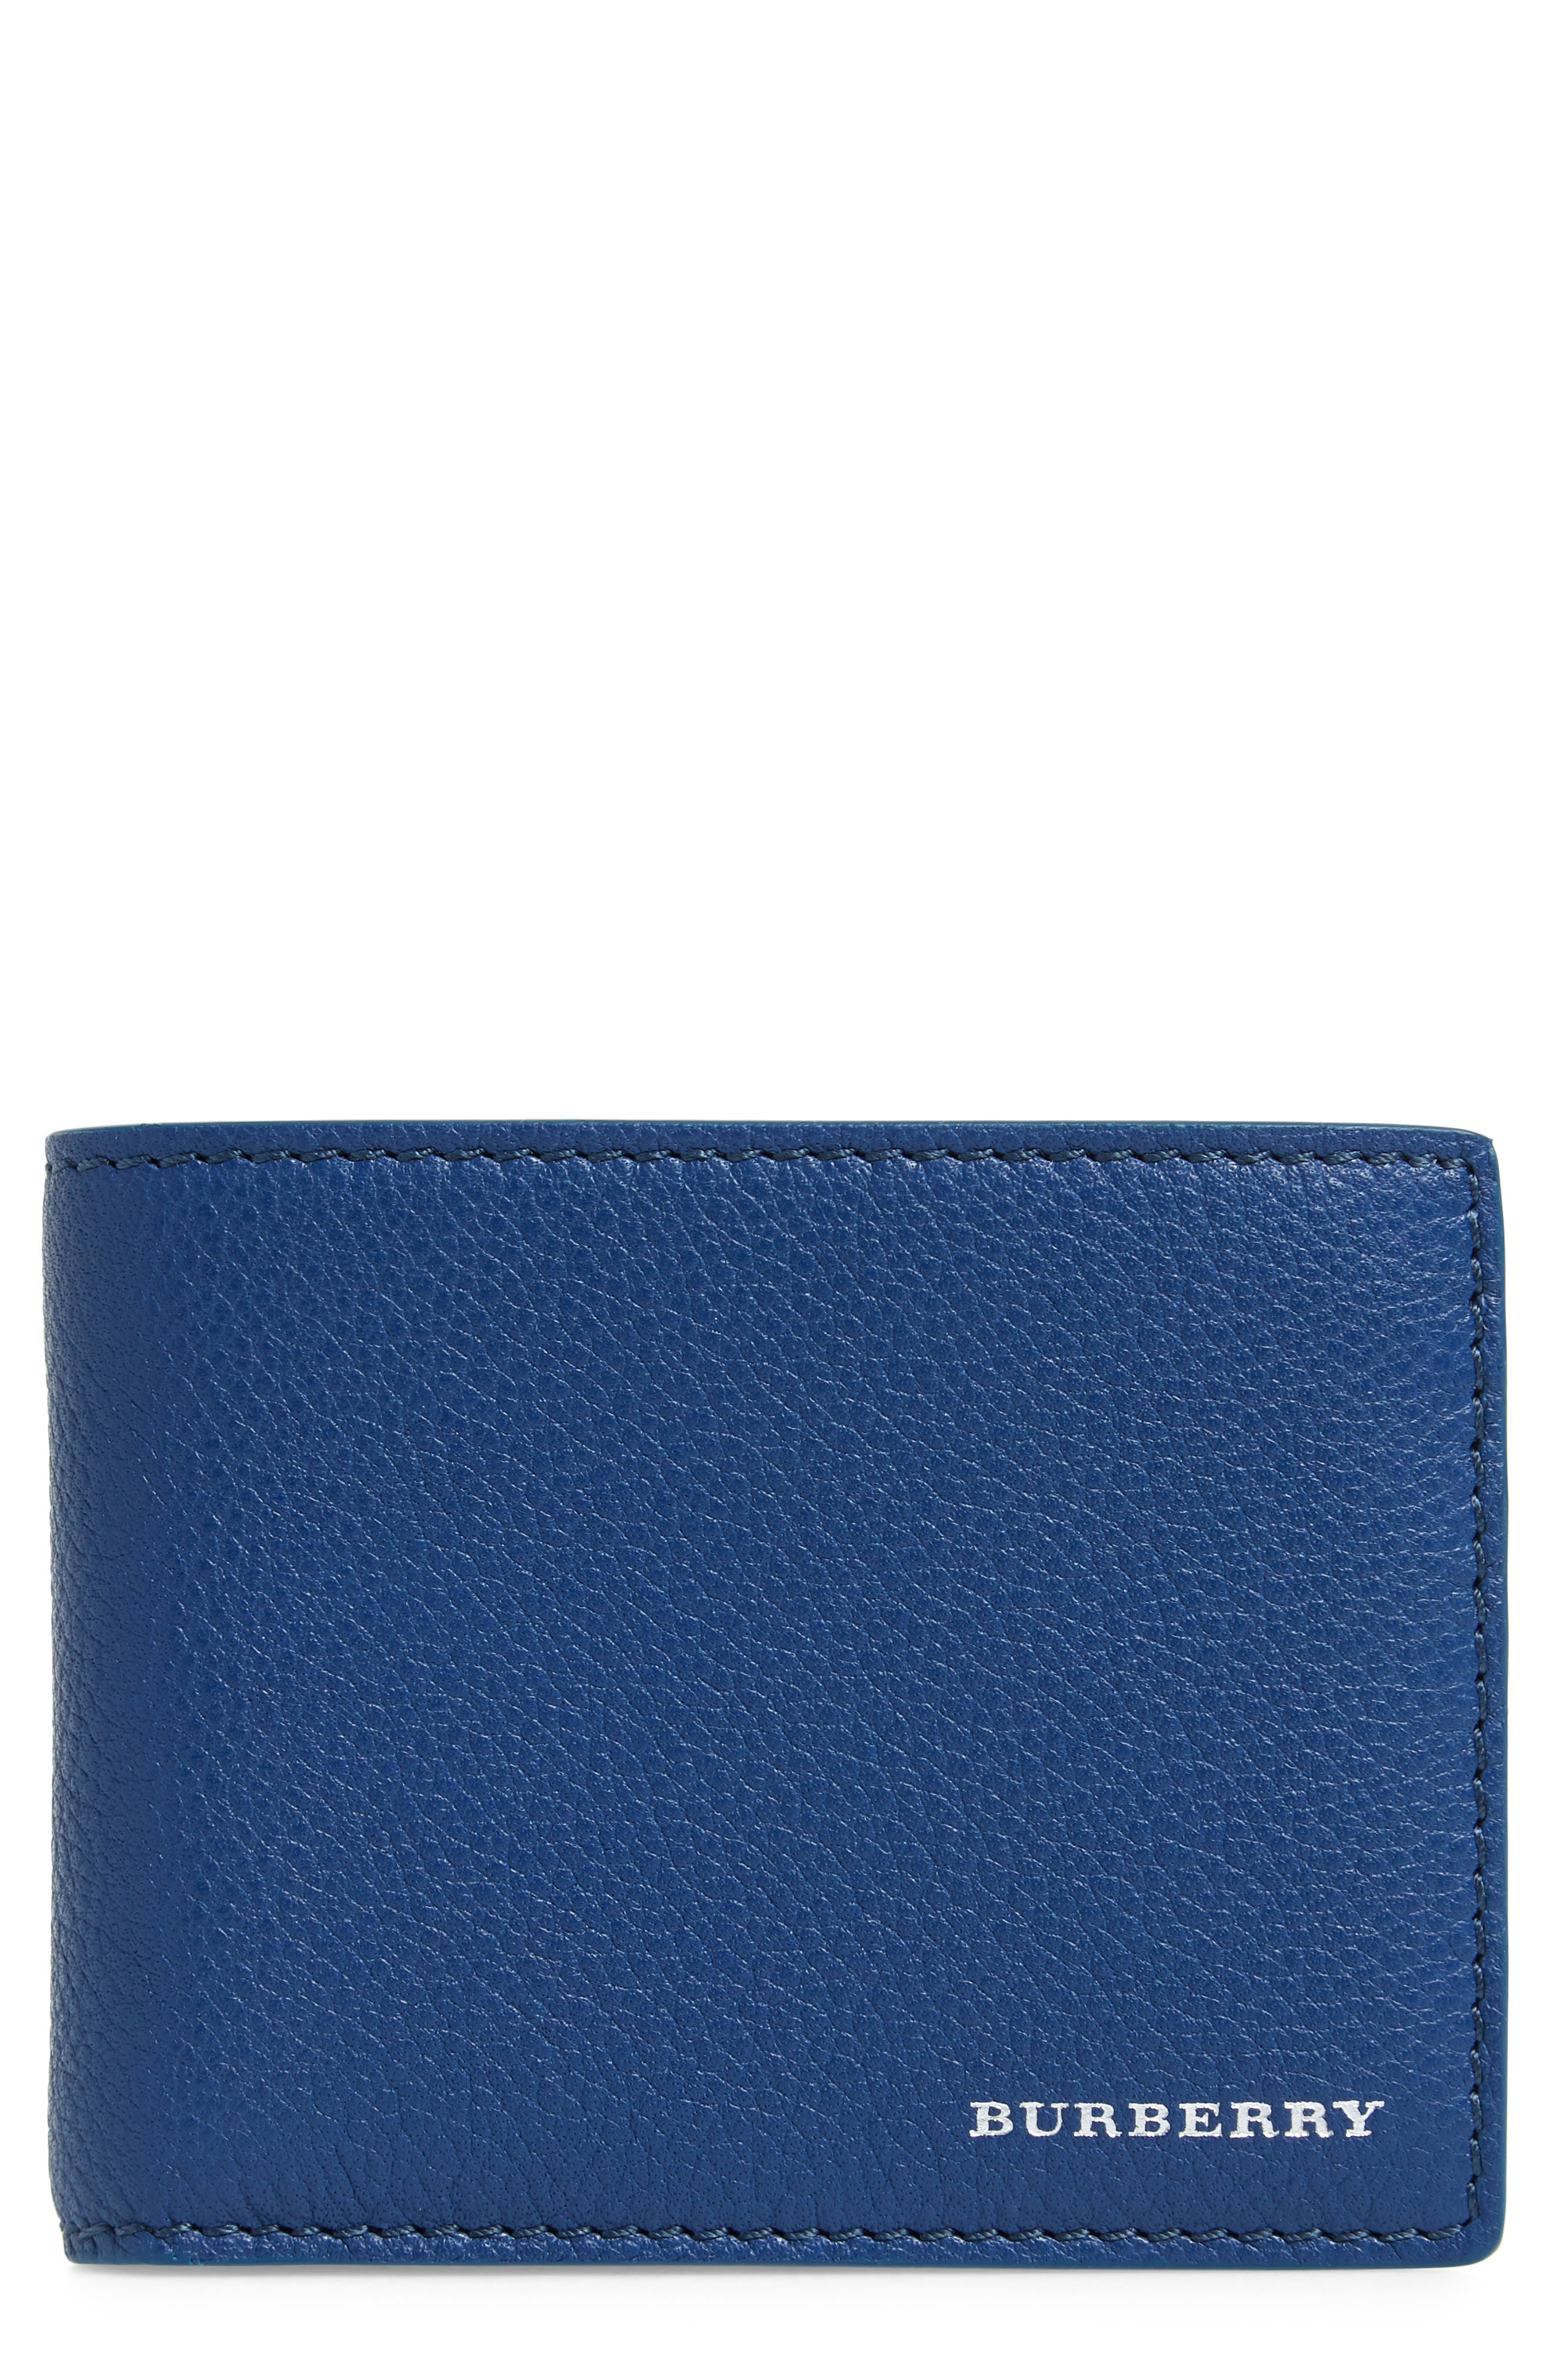 Burberry Bifold Leather Wallet